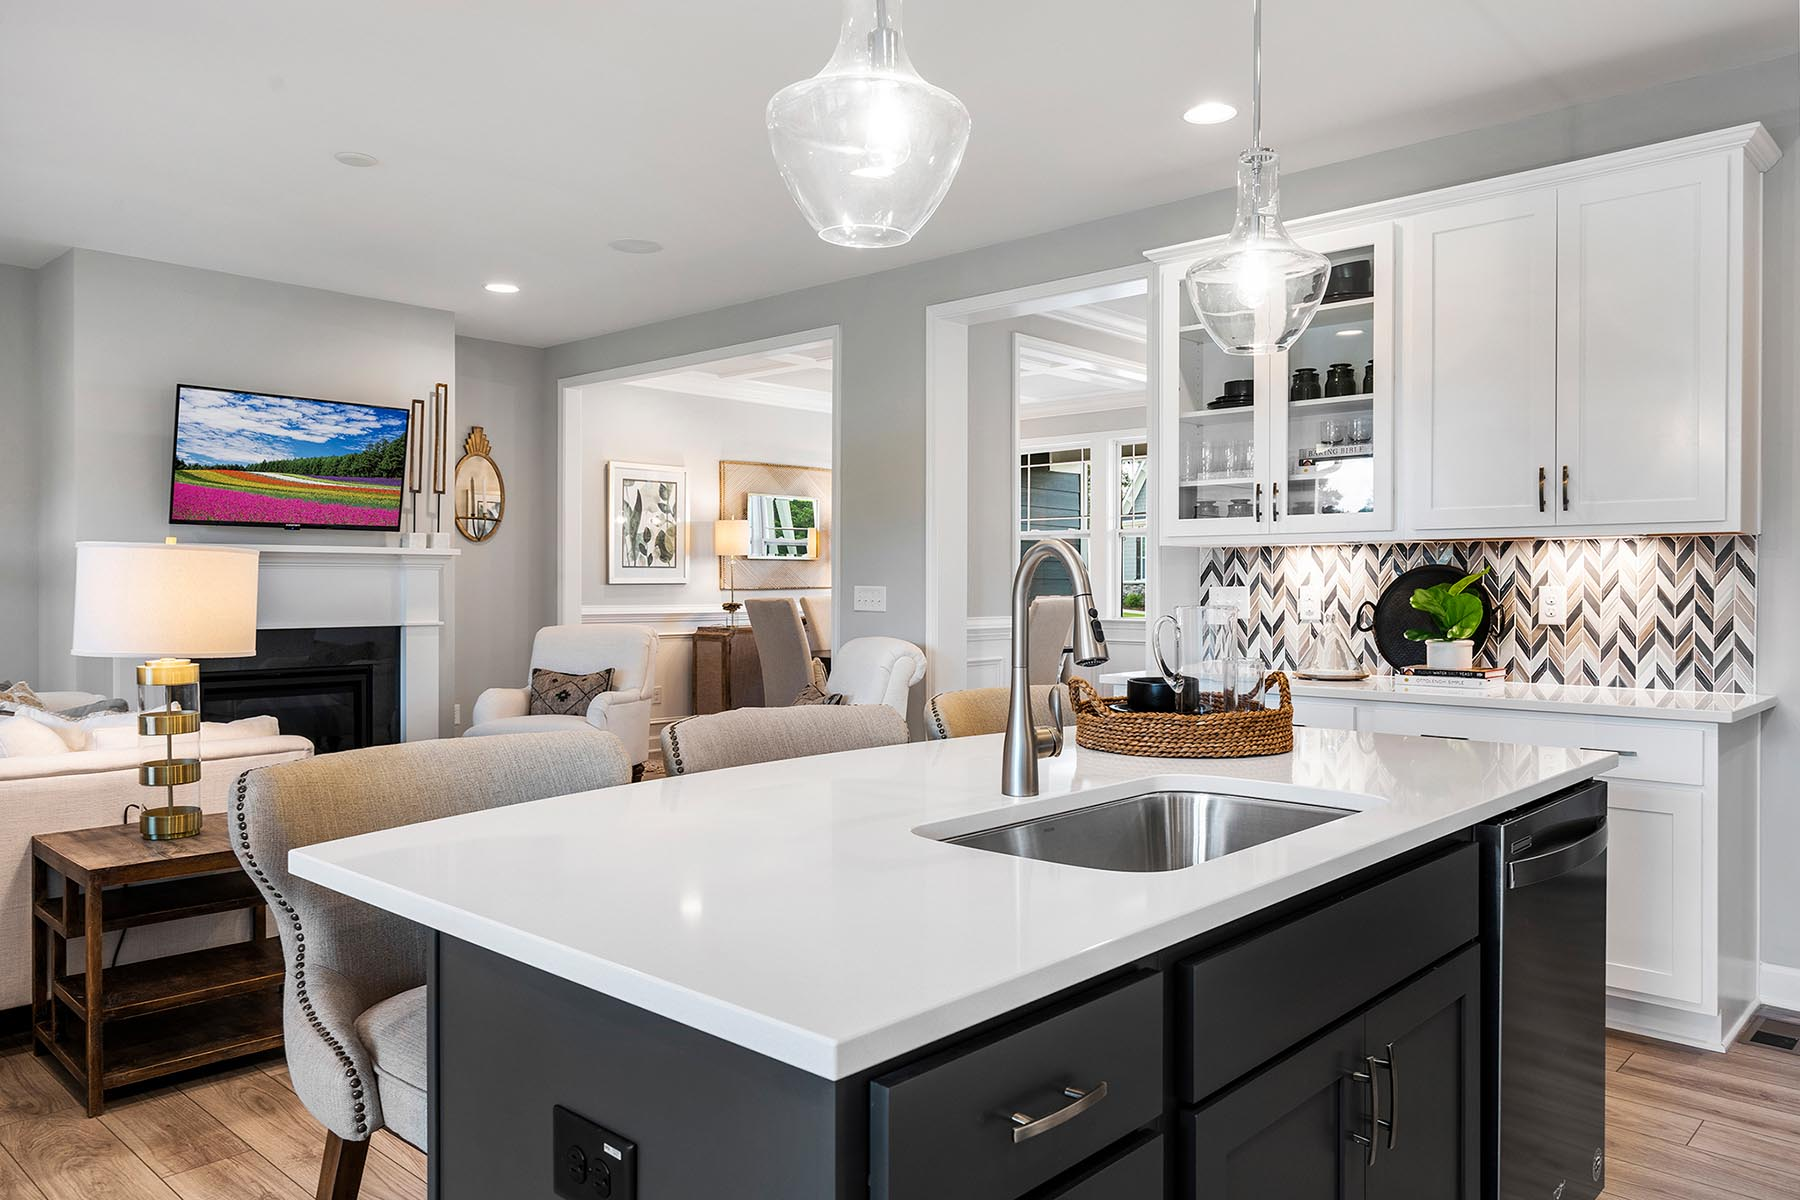 Larkin Plan Kitchen at Portofino in Clayton North Carolina by Mattamy Homes